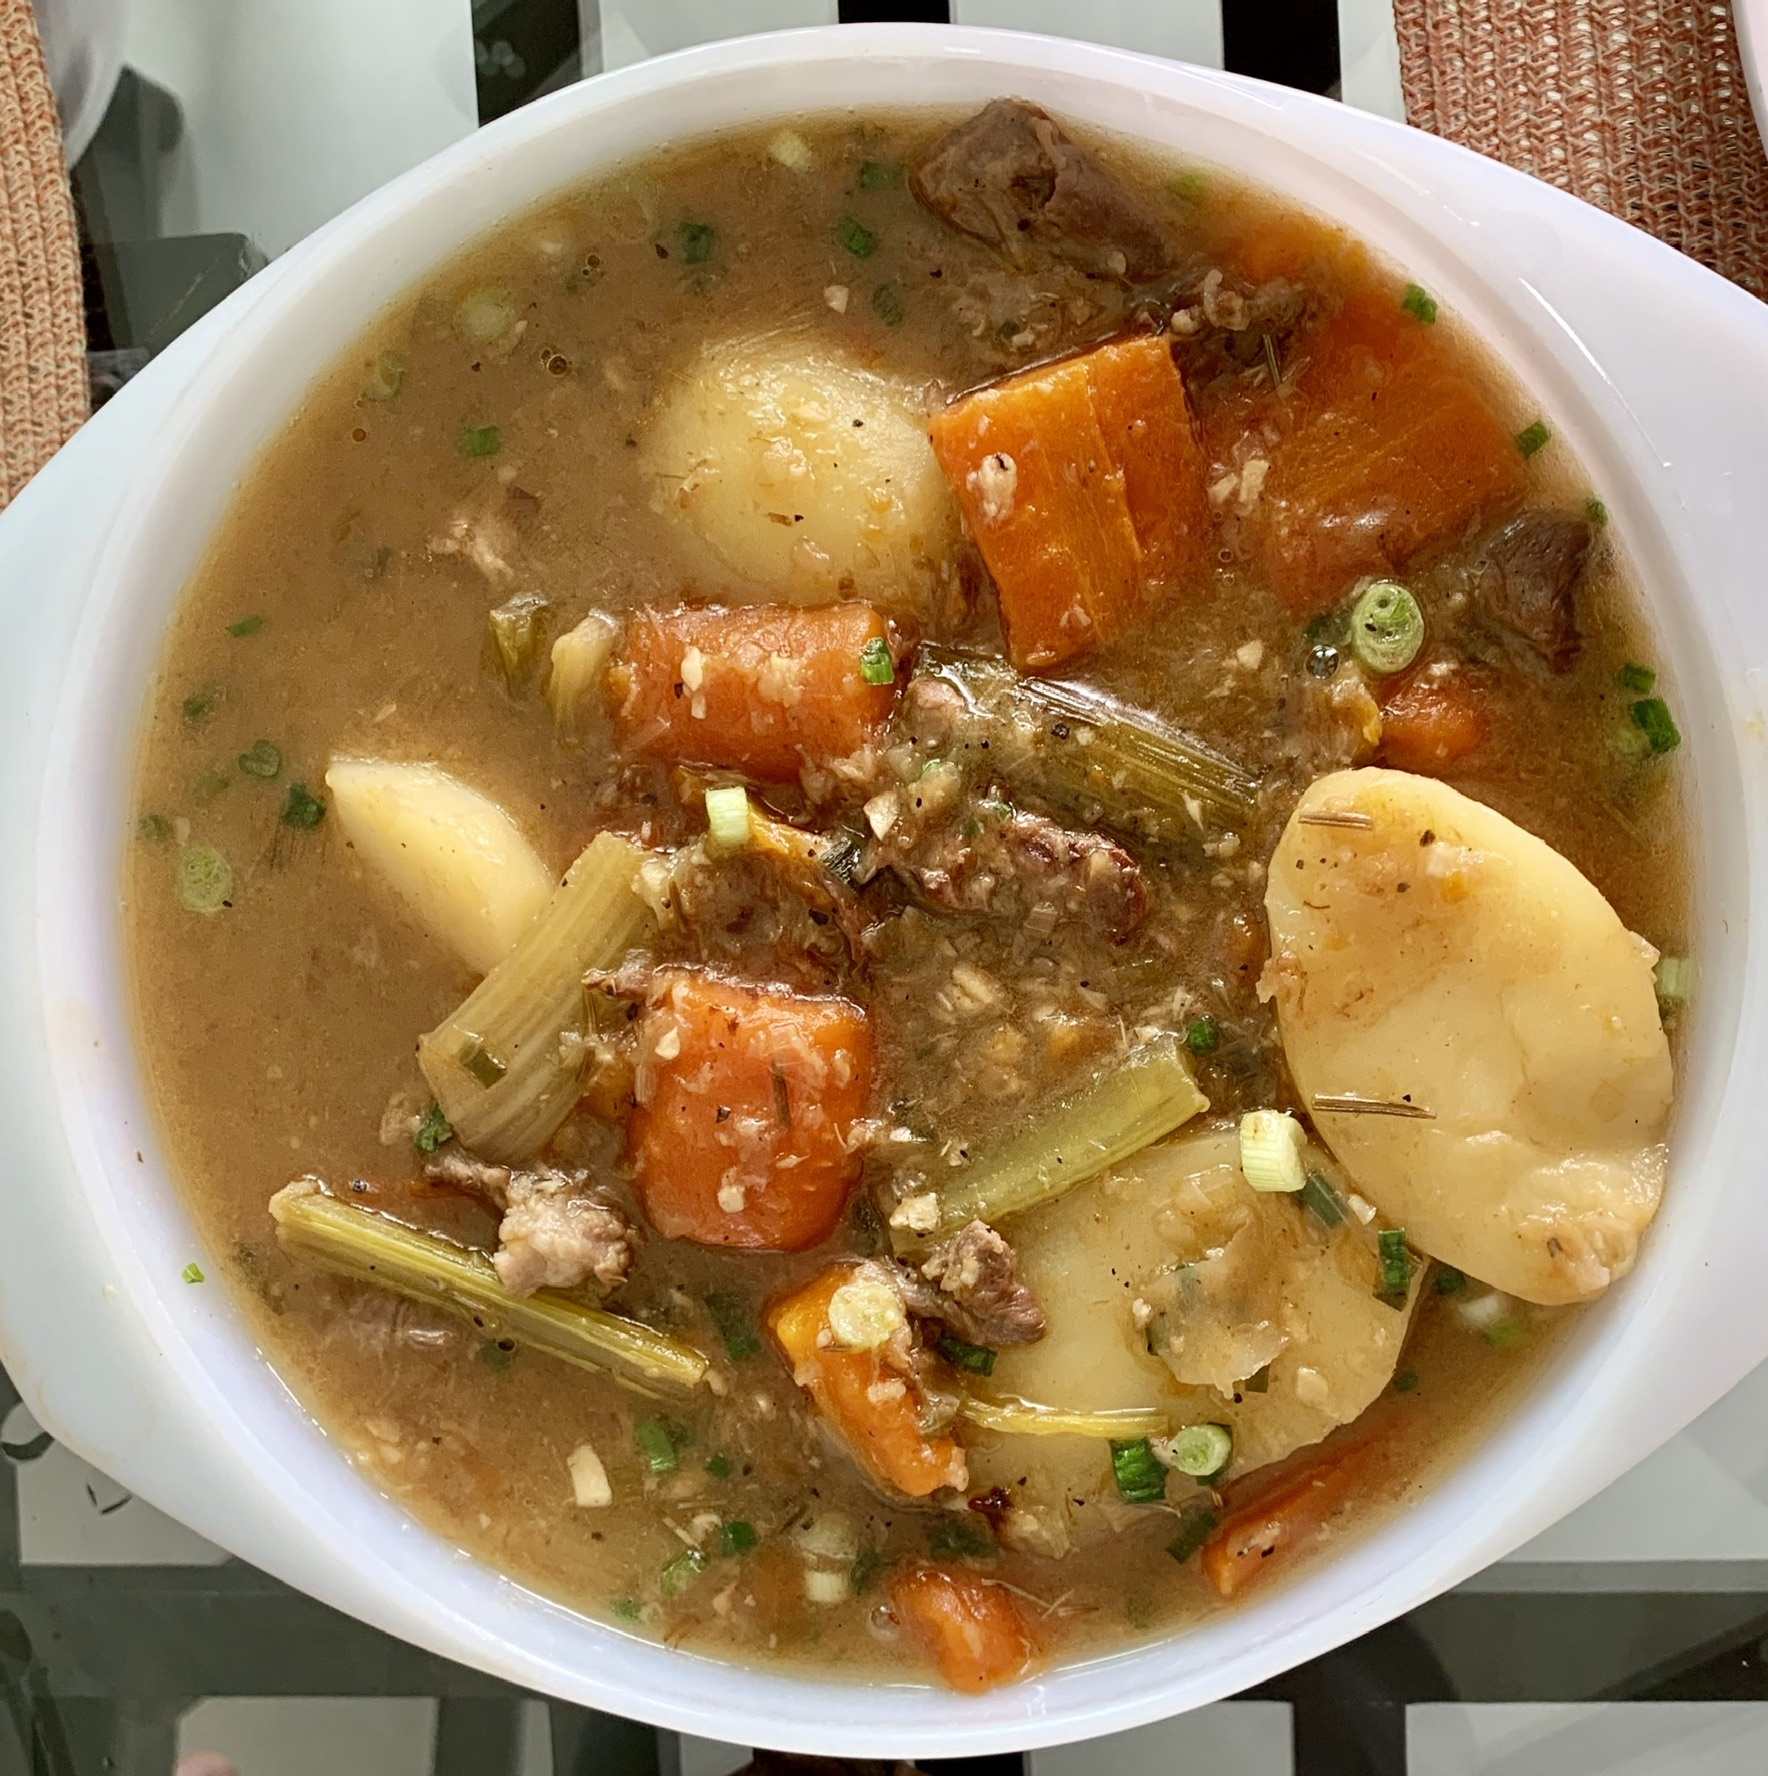 Chef John's Irish Stew